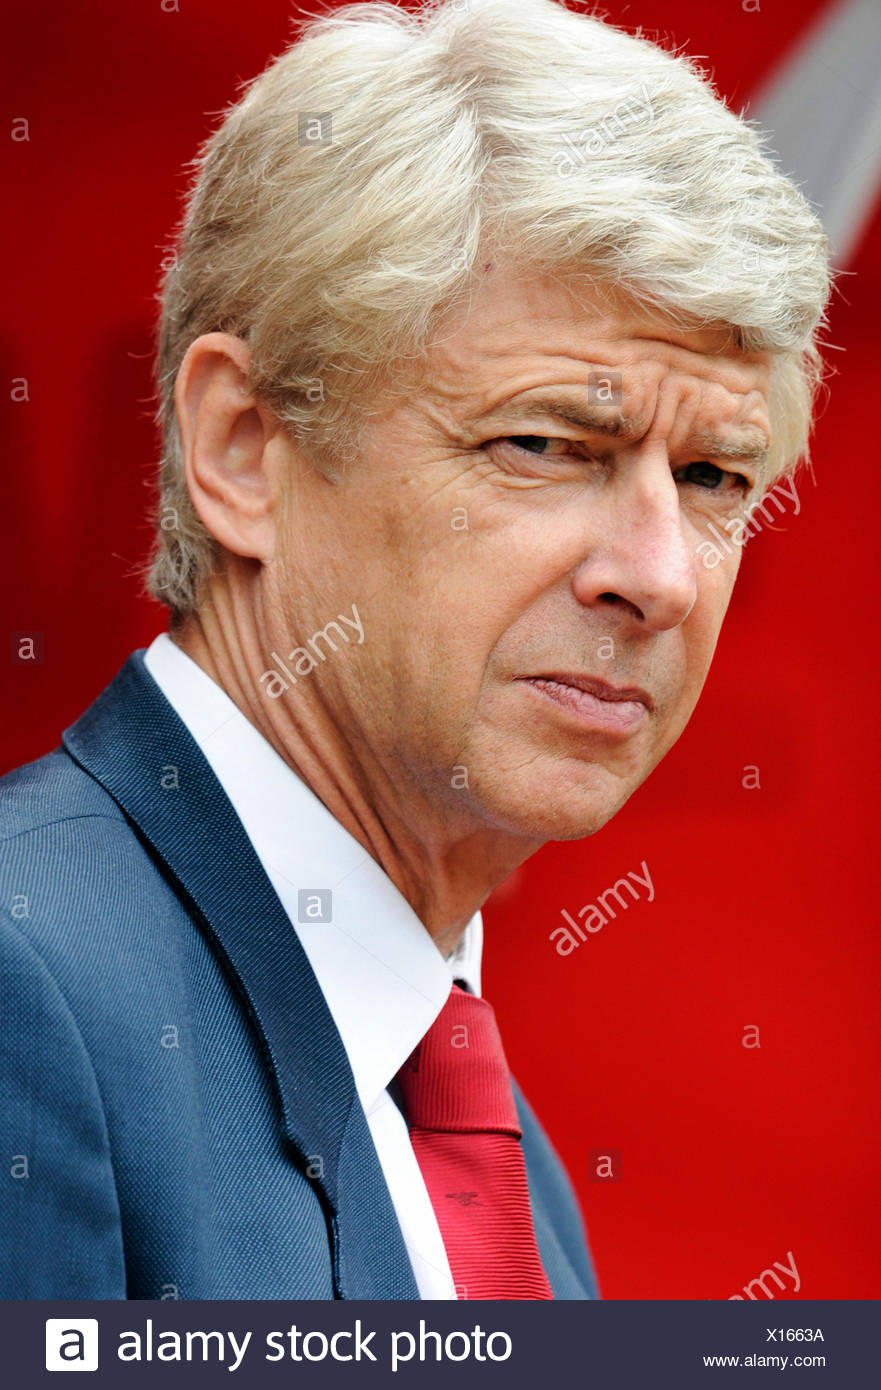 Arsene Wenger, manager of Arsenal during football test match between FC Cologne 1-2 Arsenal, Rhein-Energie-Stadion, Cologne - Stock Image